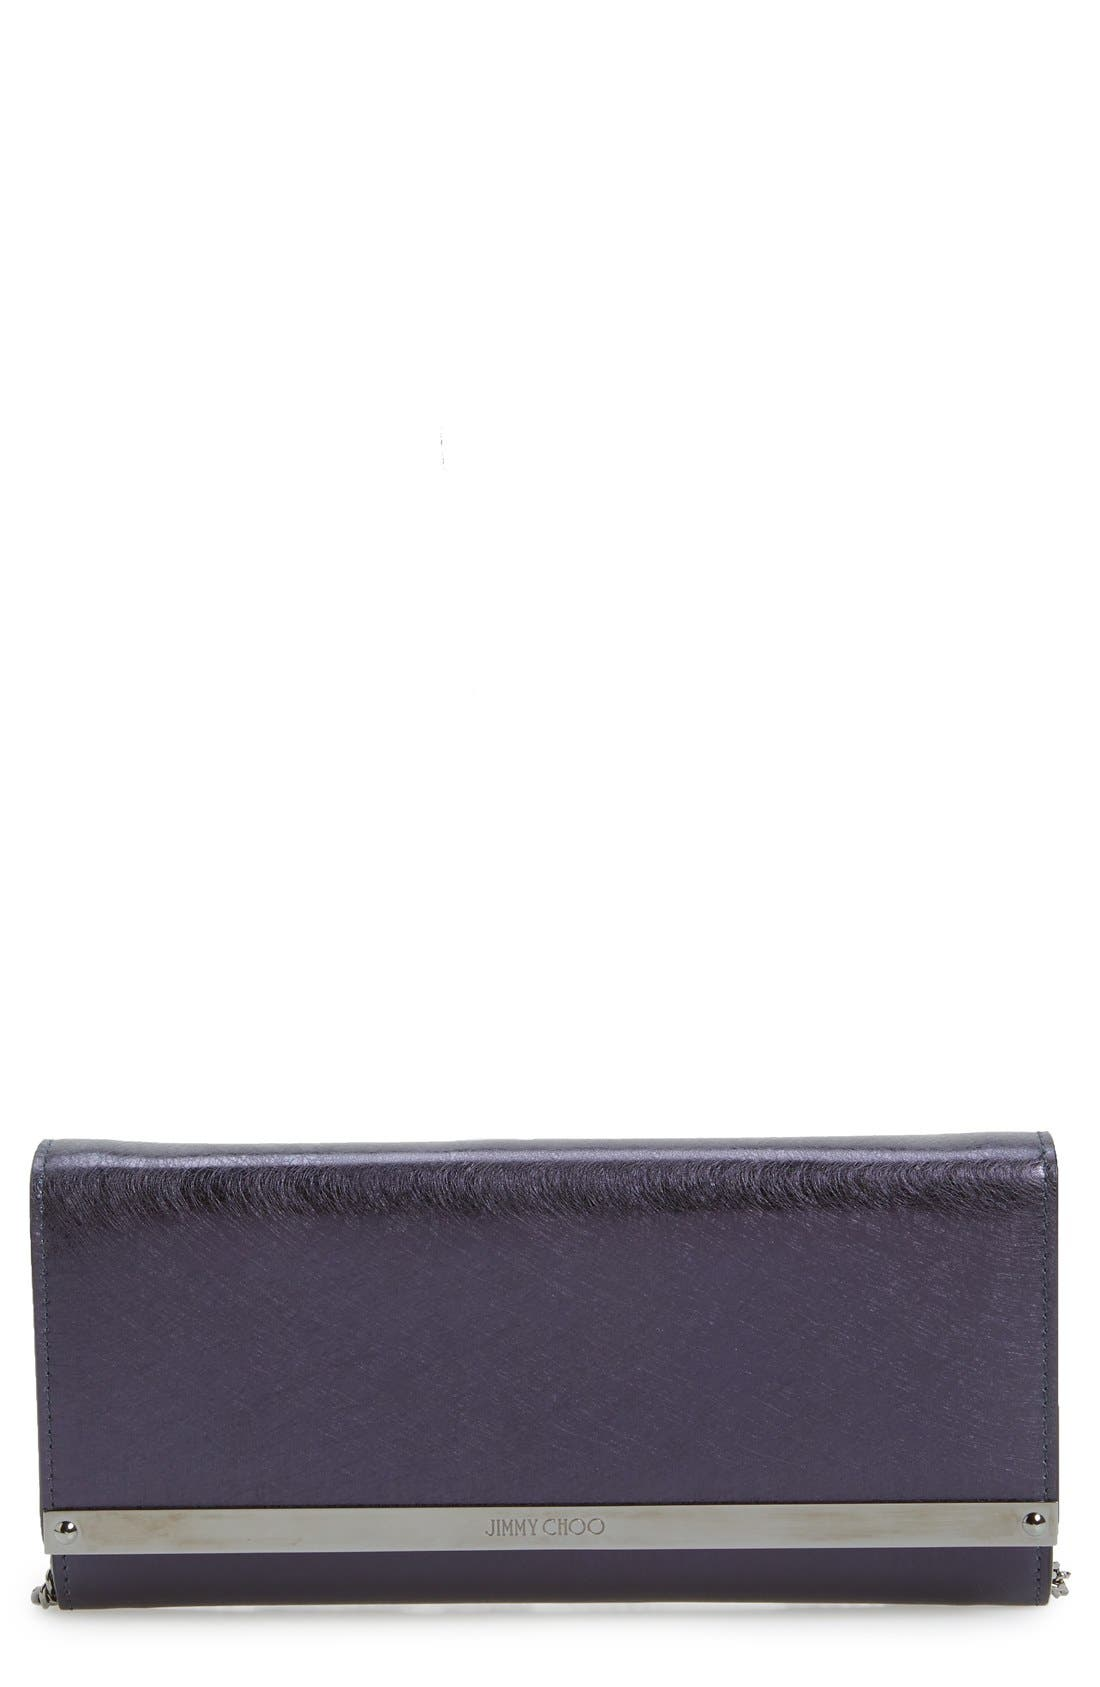 Main Image - Jimmy Choo 'Milla' Etched Metallic Spazzolato Leather Flap Clutch